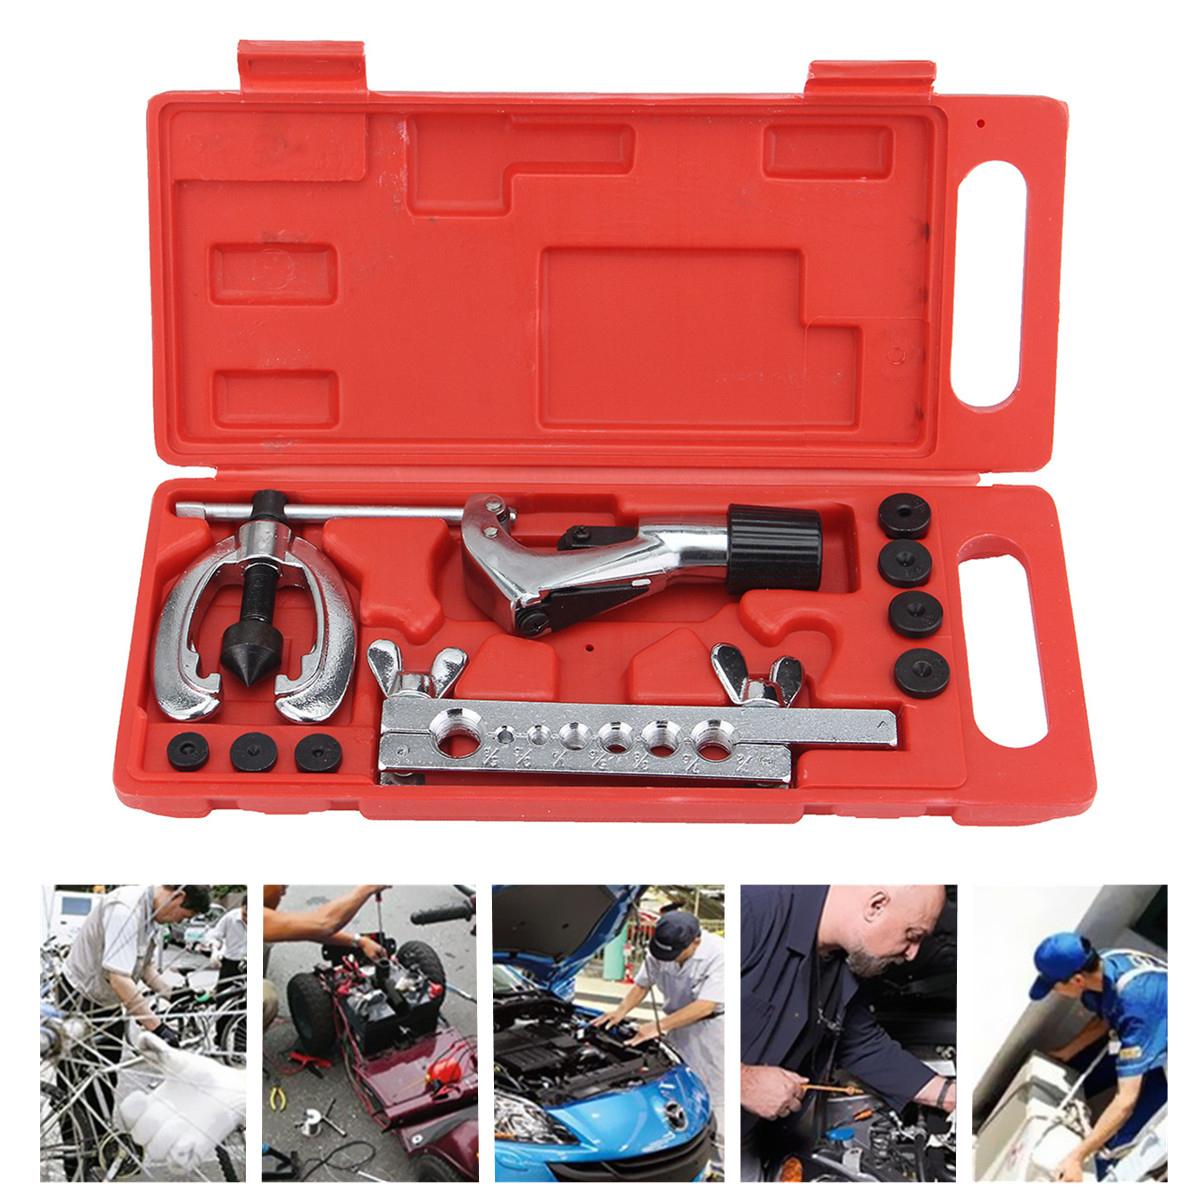 Double Flaring Tube Flare Tool Kits Pipe Cutter Refrigeration Expander With Case CT-2030